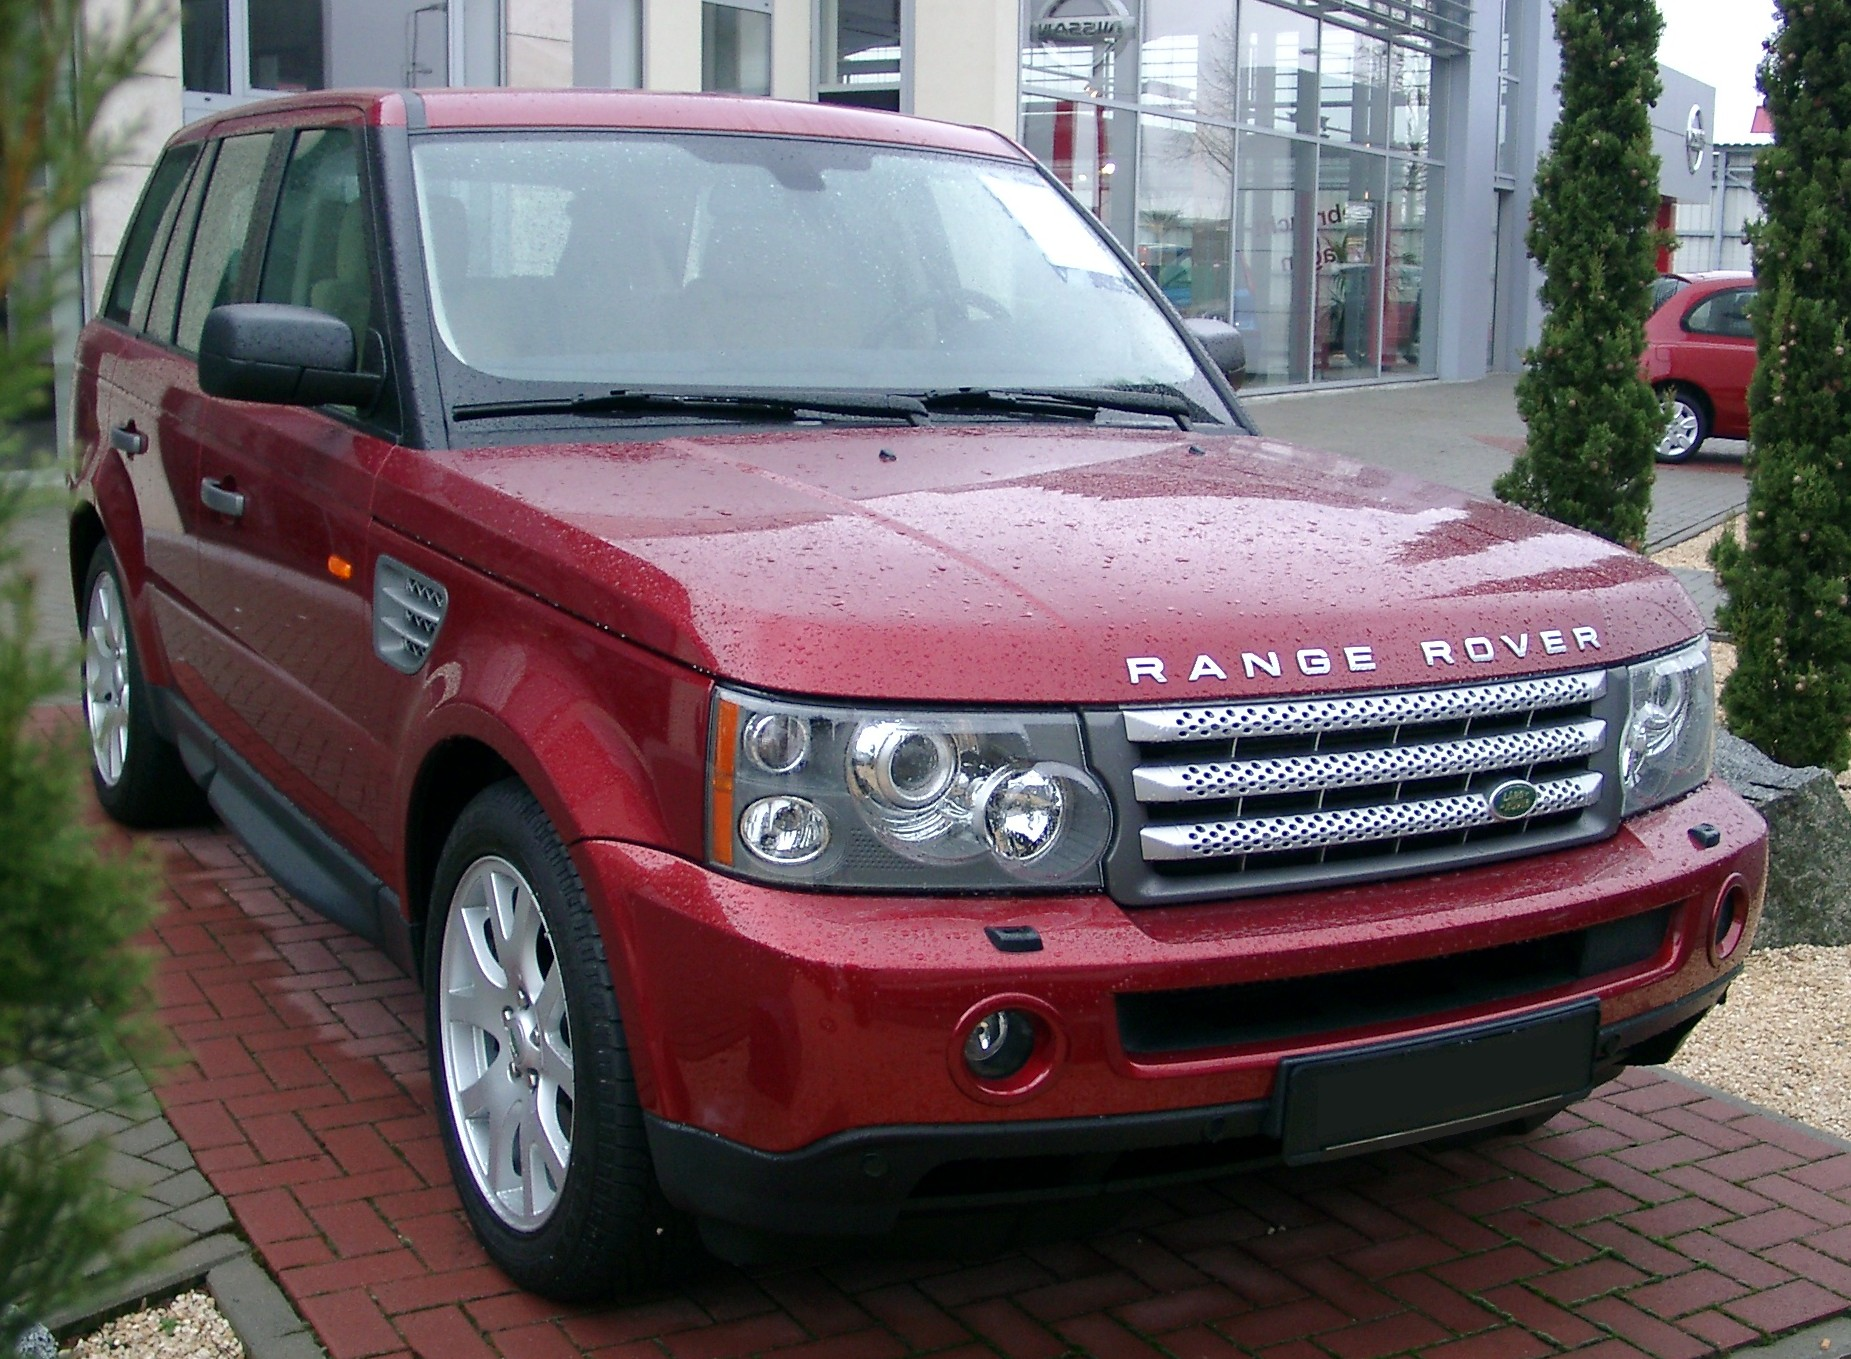 file range rover sport hse front wikipedia. Black Bedroom Furniture Sets. Home Design Ideas